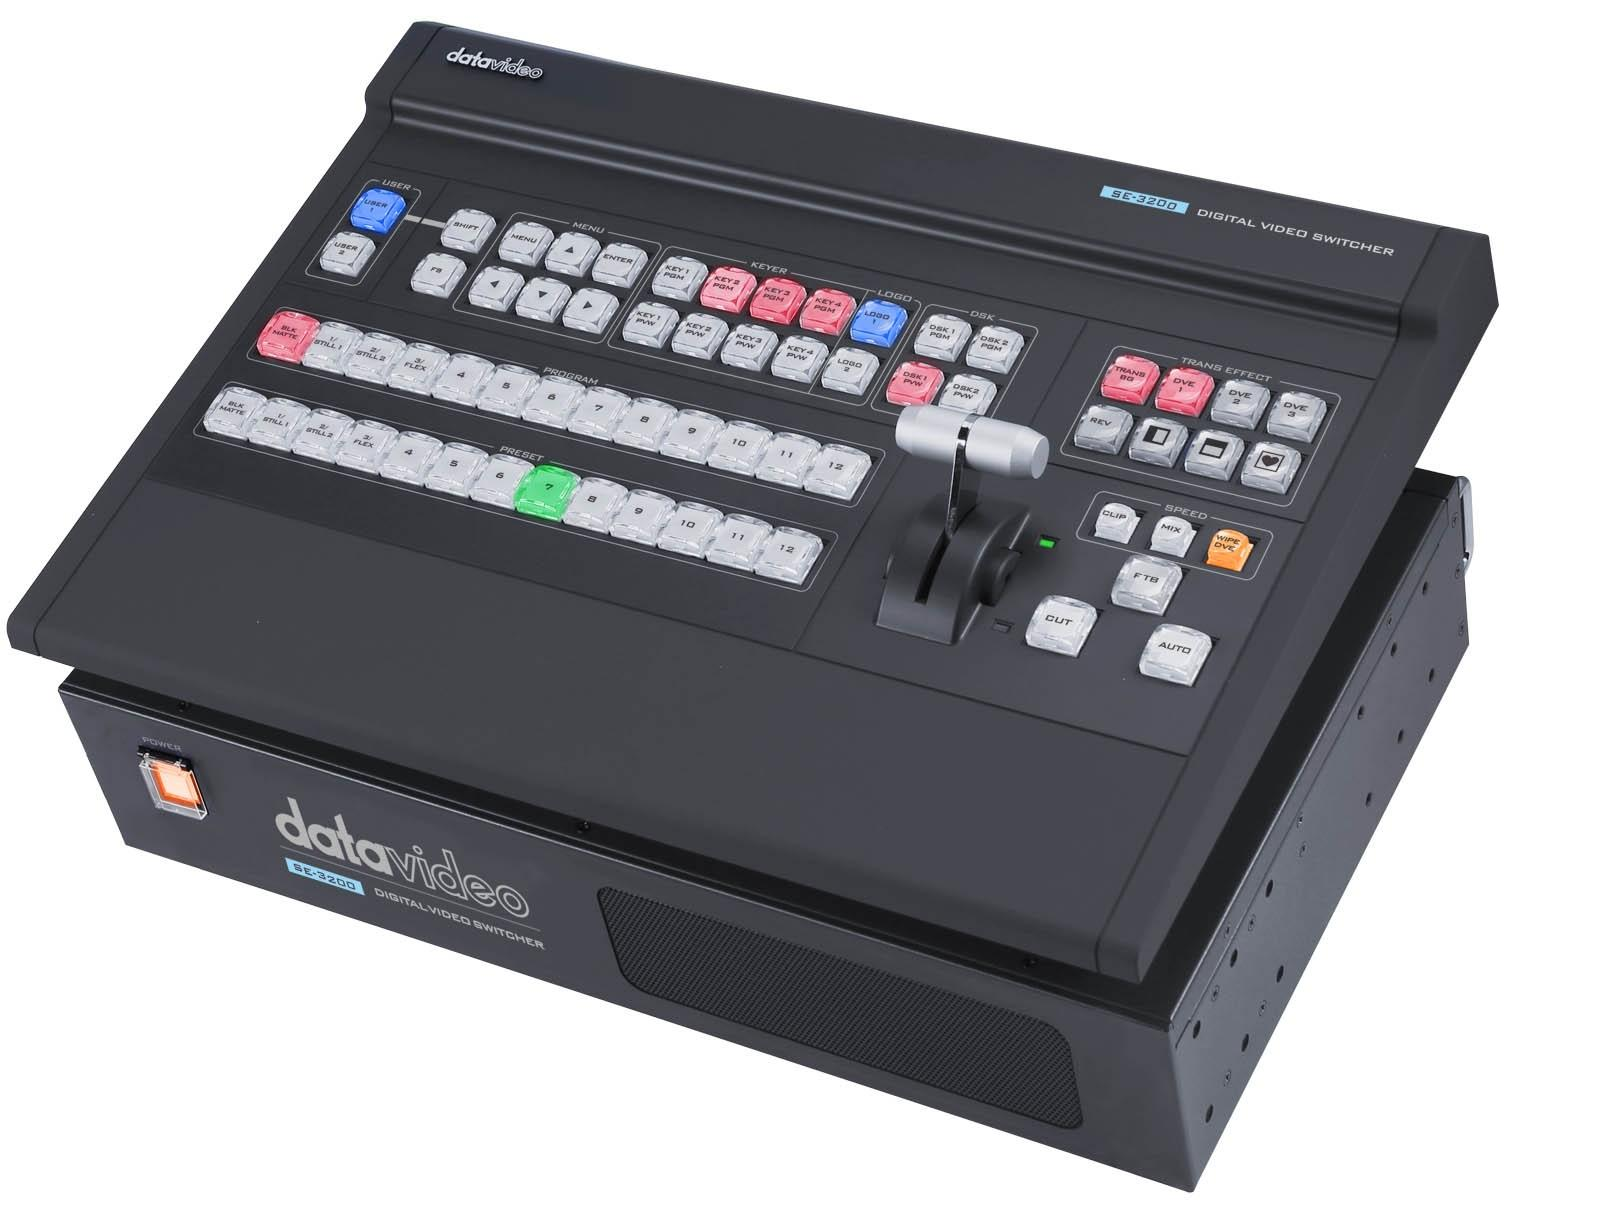 SE-3200 HD 12-Channel Digital Video Switcher by Datavideo